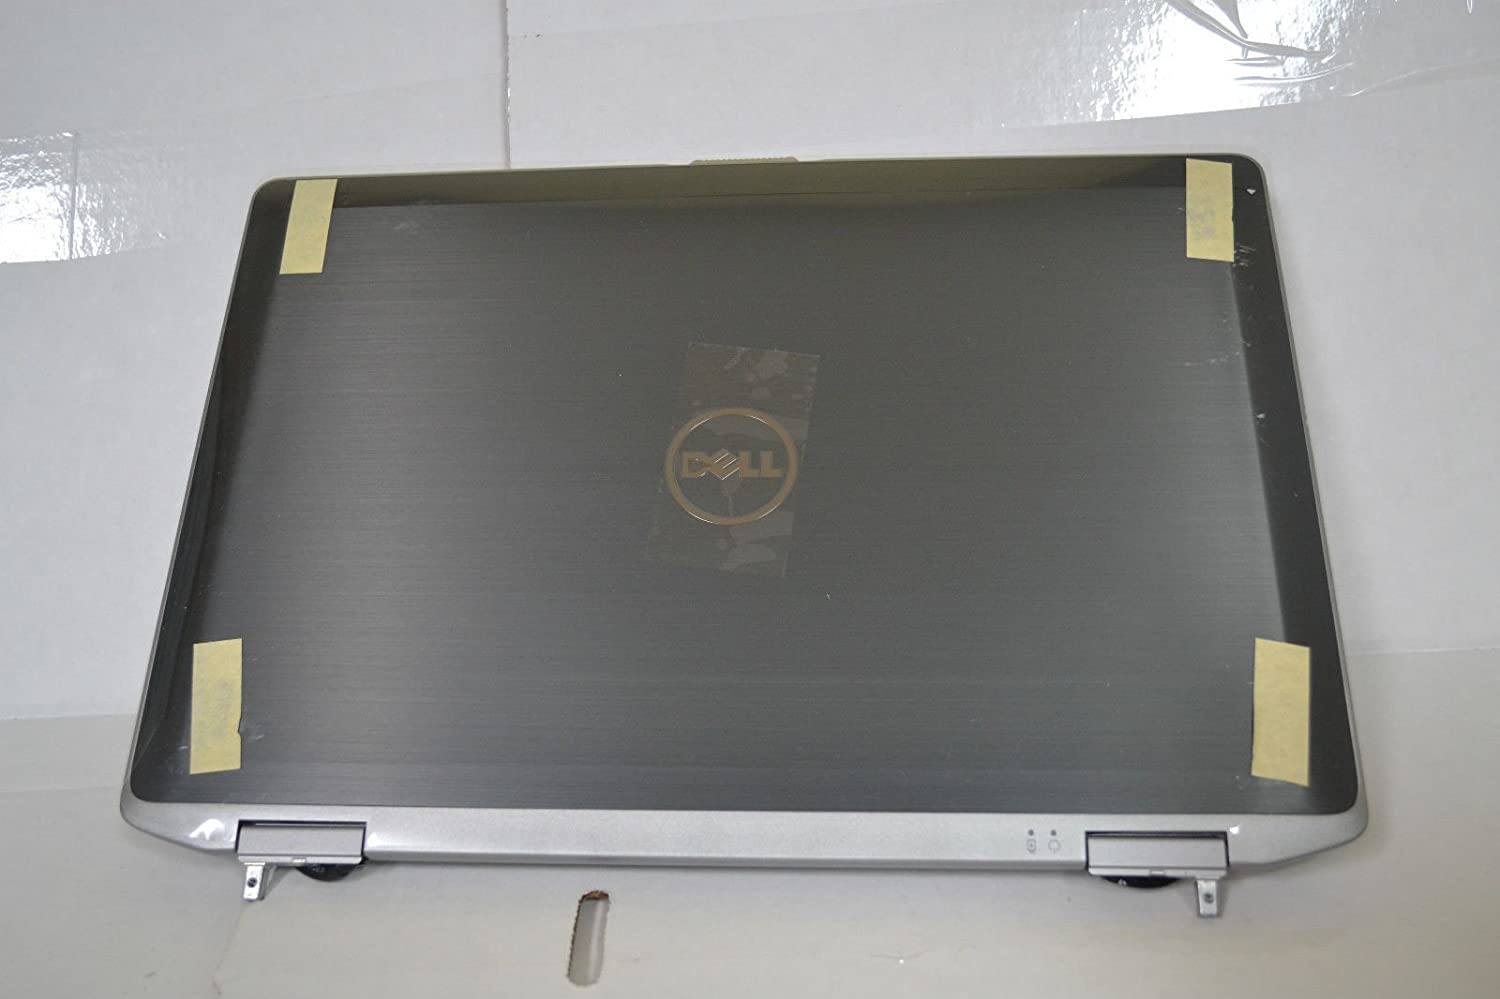 New For Dell Latitude E6420 LCD SCREEN BACK TOP COVER LID Hinges WIRES PJRCP